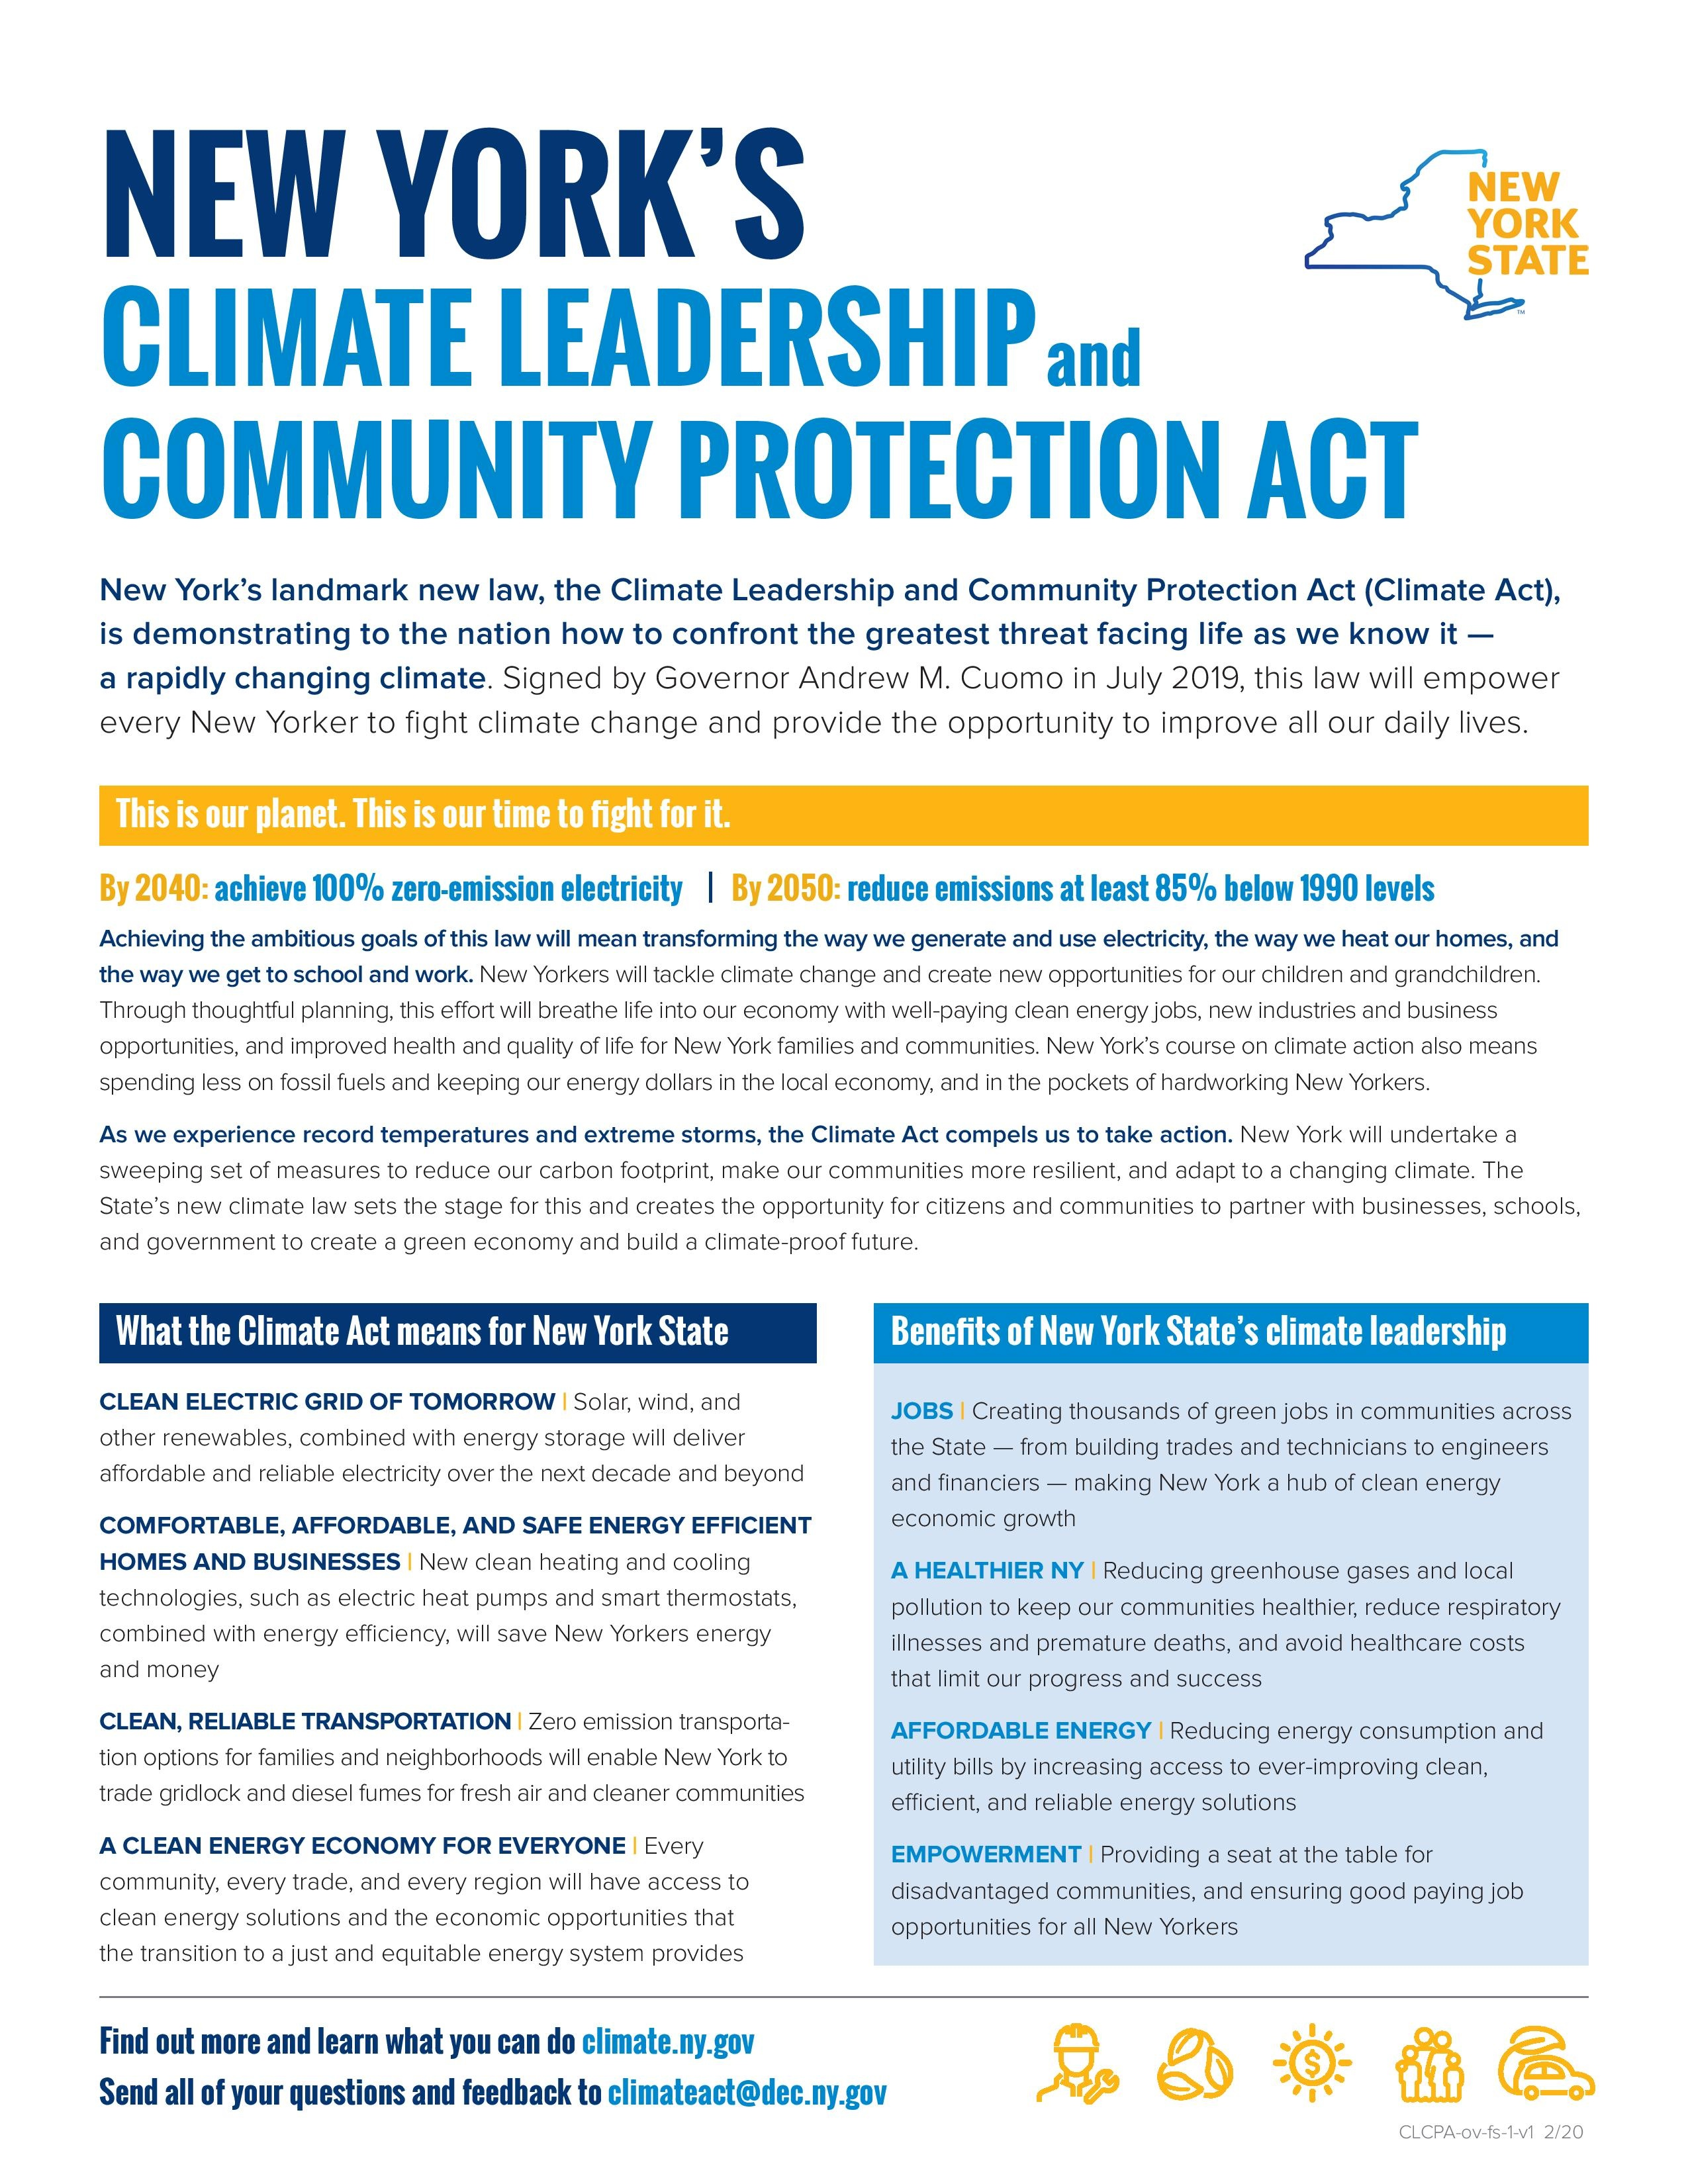 New York Climate Leadership and Community Protection Act (CLCPA) Fact Sheet